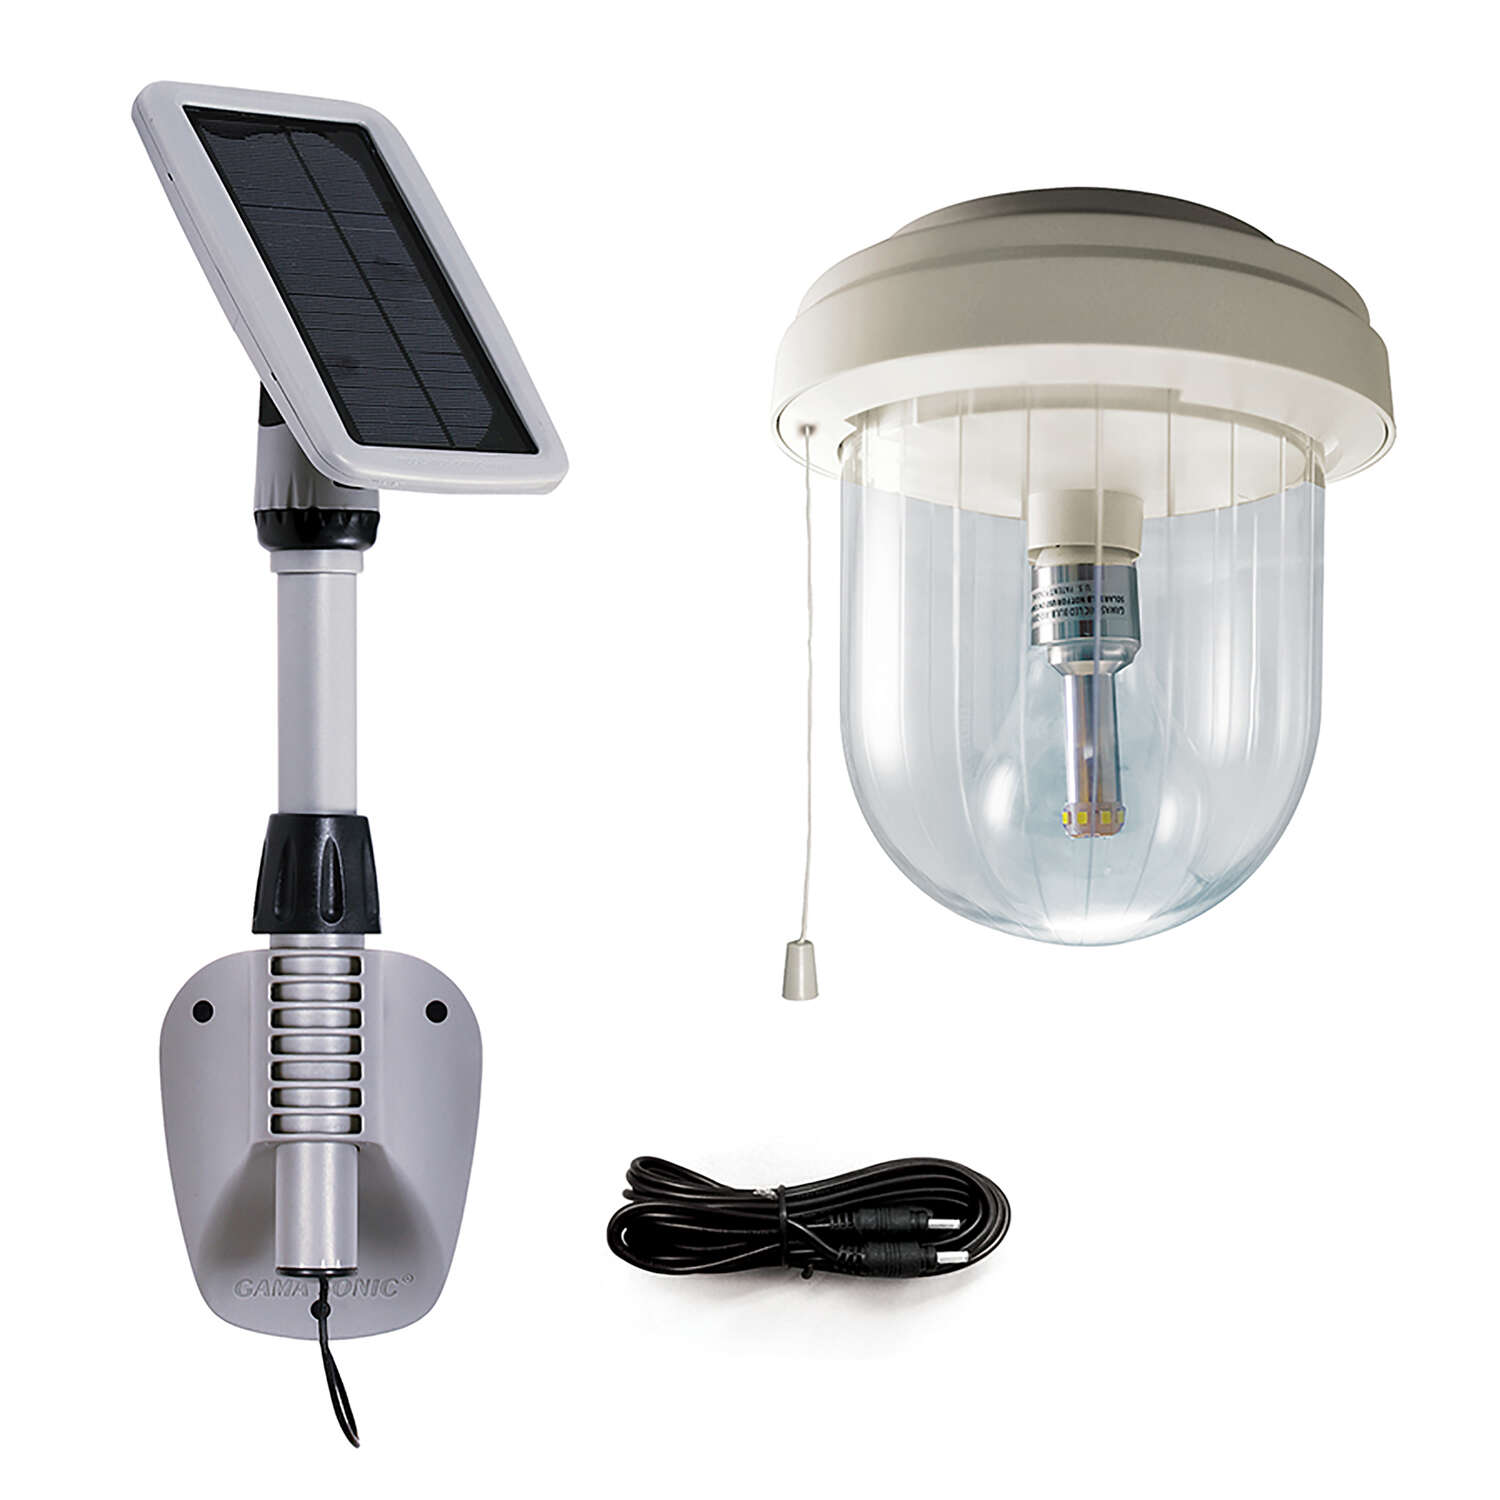 Gama Sonic  Light My Shed IV  Solar Powered  LED  Area Light